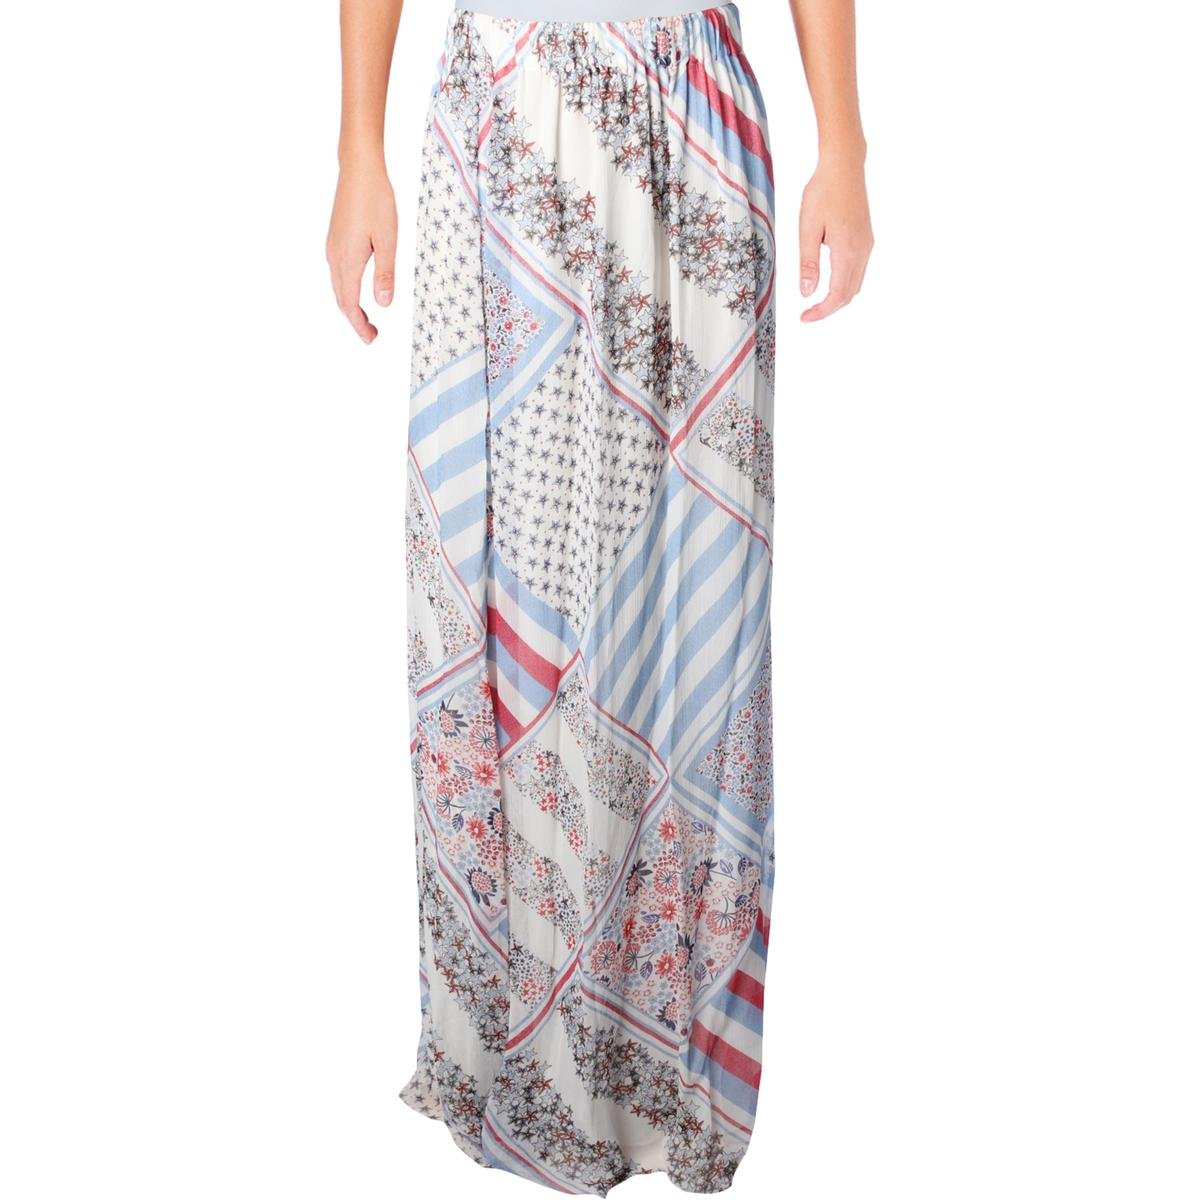 Tommy Hilfiger Womens Silk Printed Maxi Skirt Multi 6 by Tommy Hilfiger